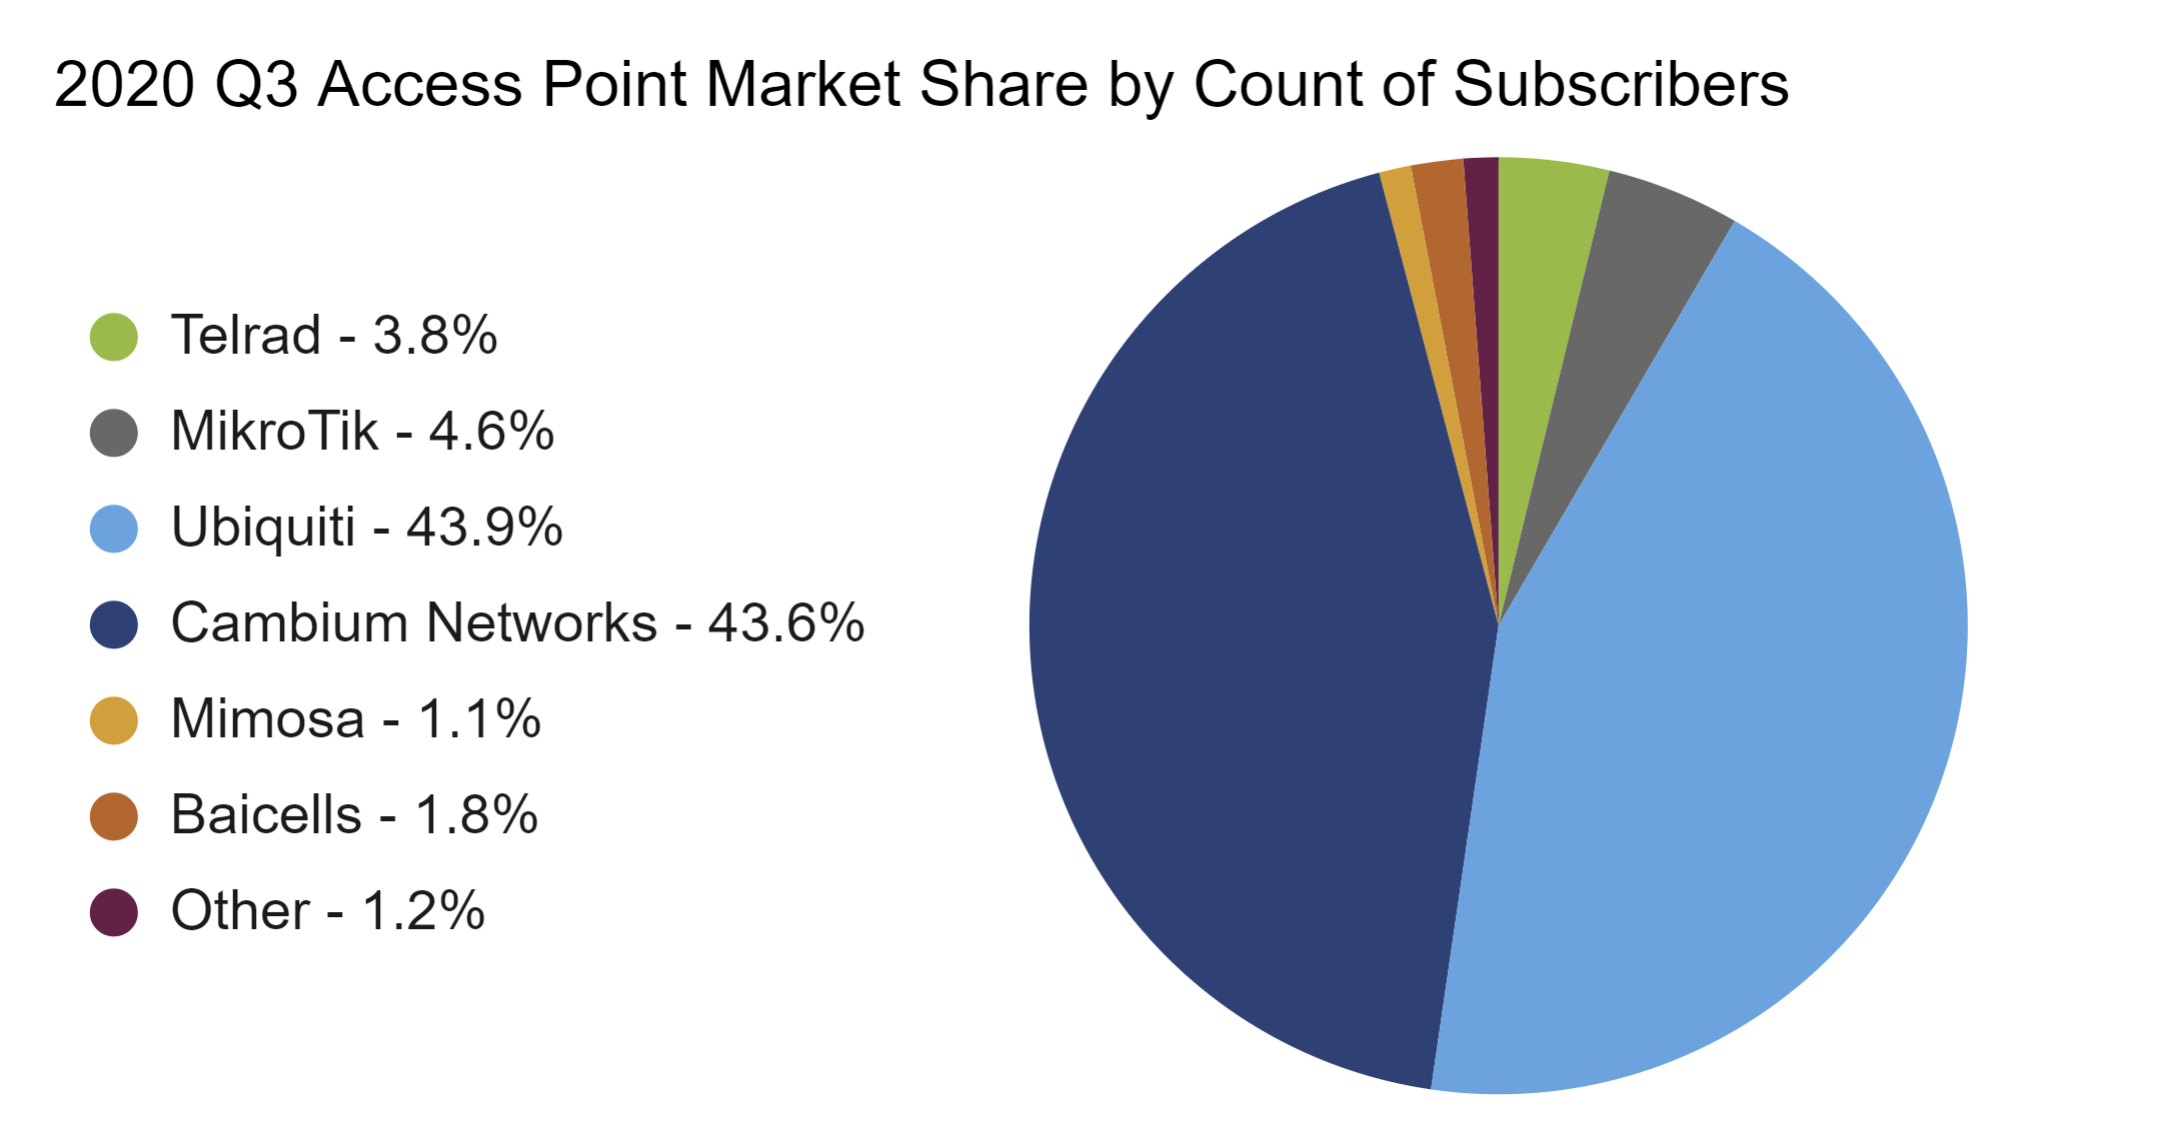 Access Point Comparison - 2020 Q3 AP Market Share by Count of Subs